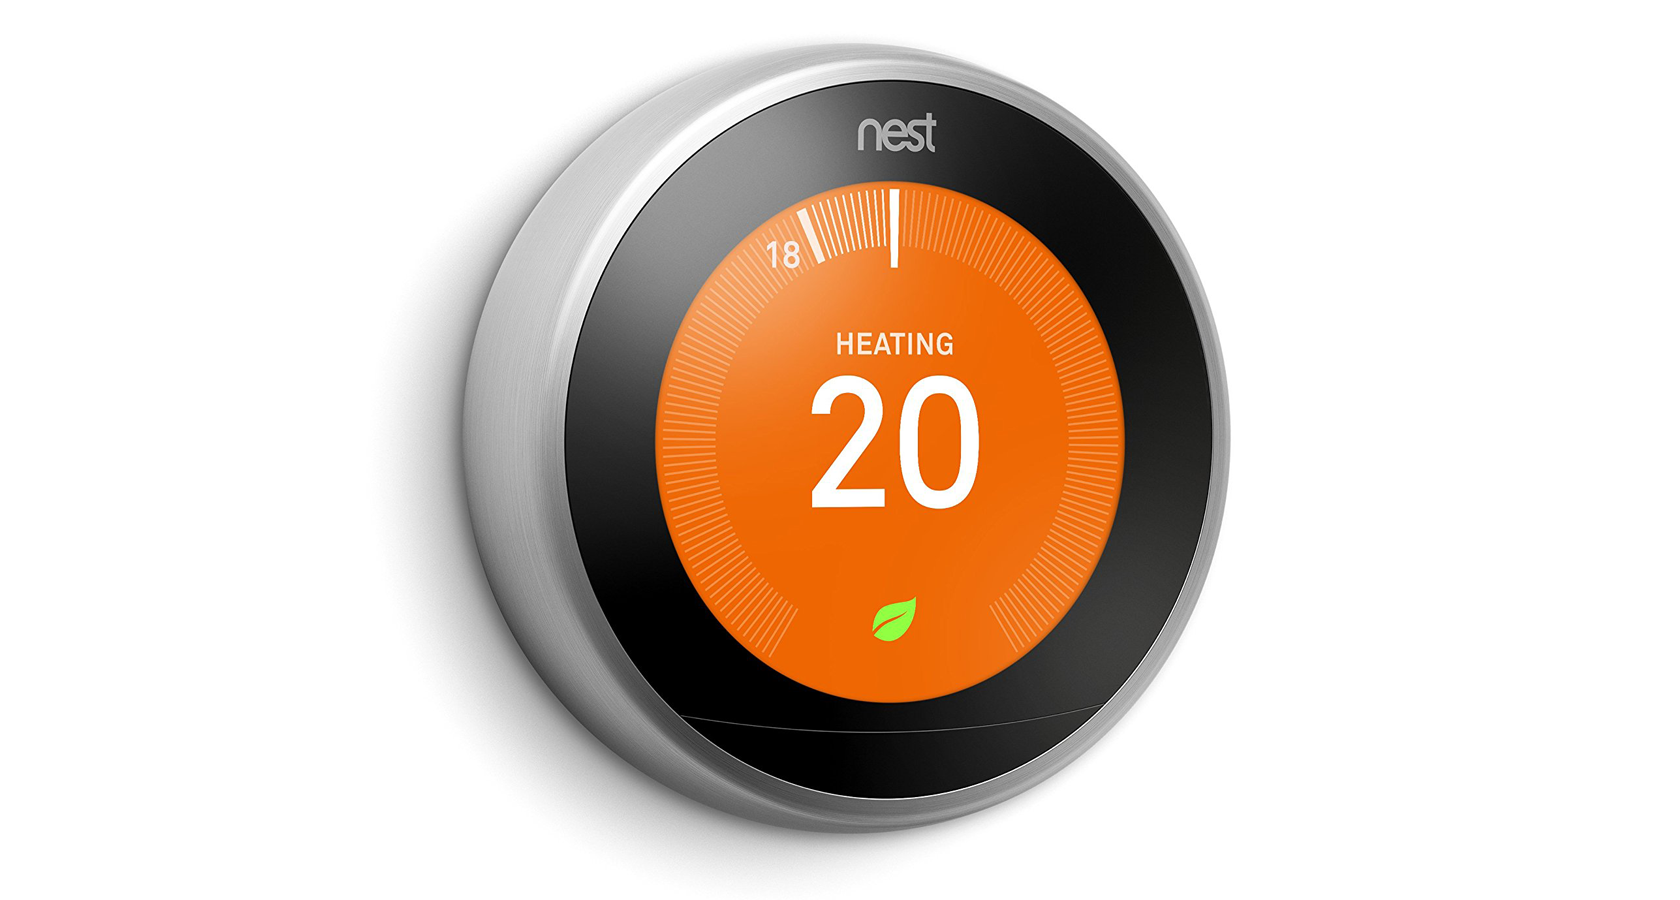 The Nest thermostat is a great example in the art vs. design debate.